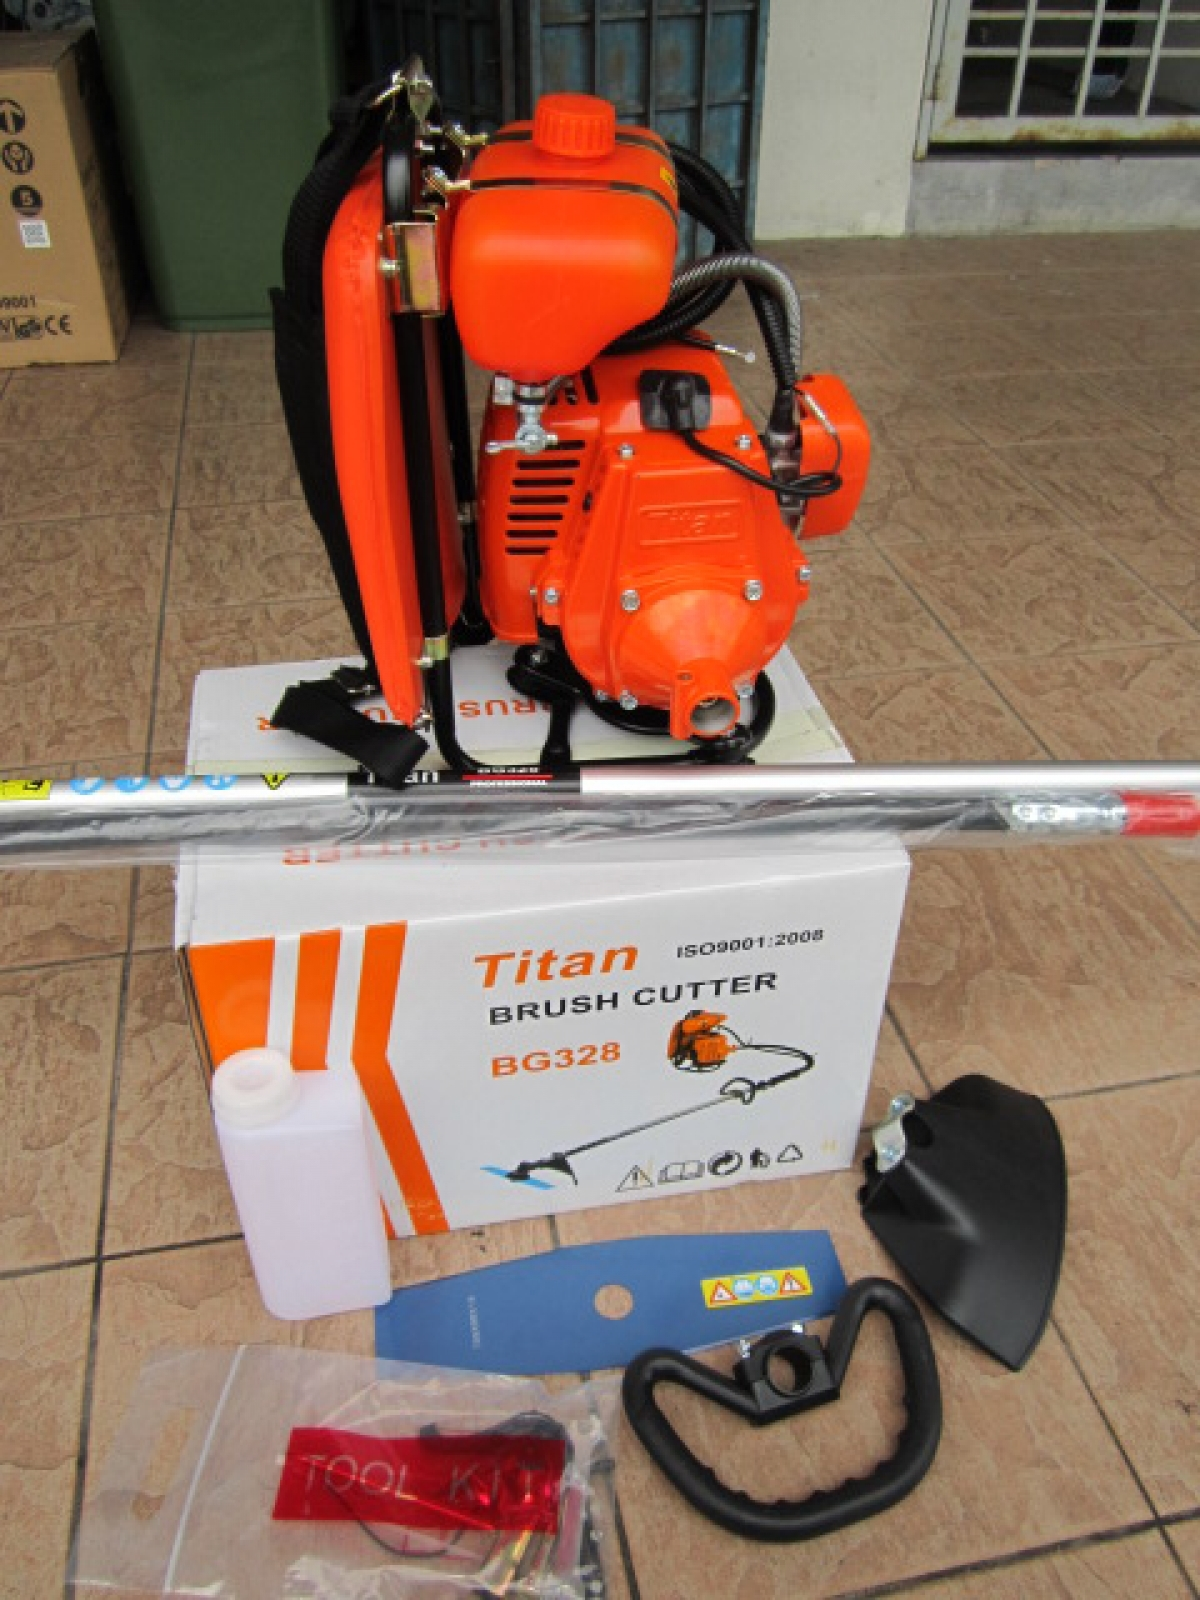 Titan Bg328 Backpack Gasoline Brush Cutter Machine My